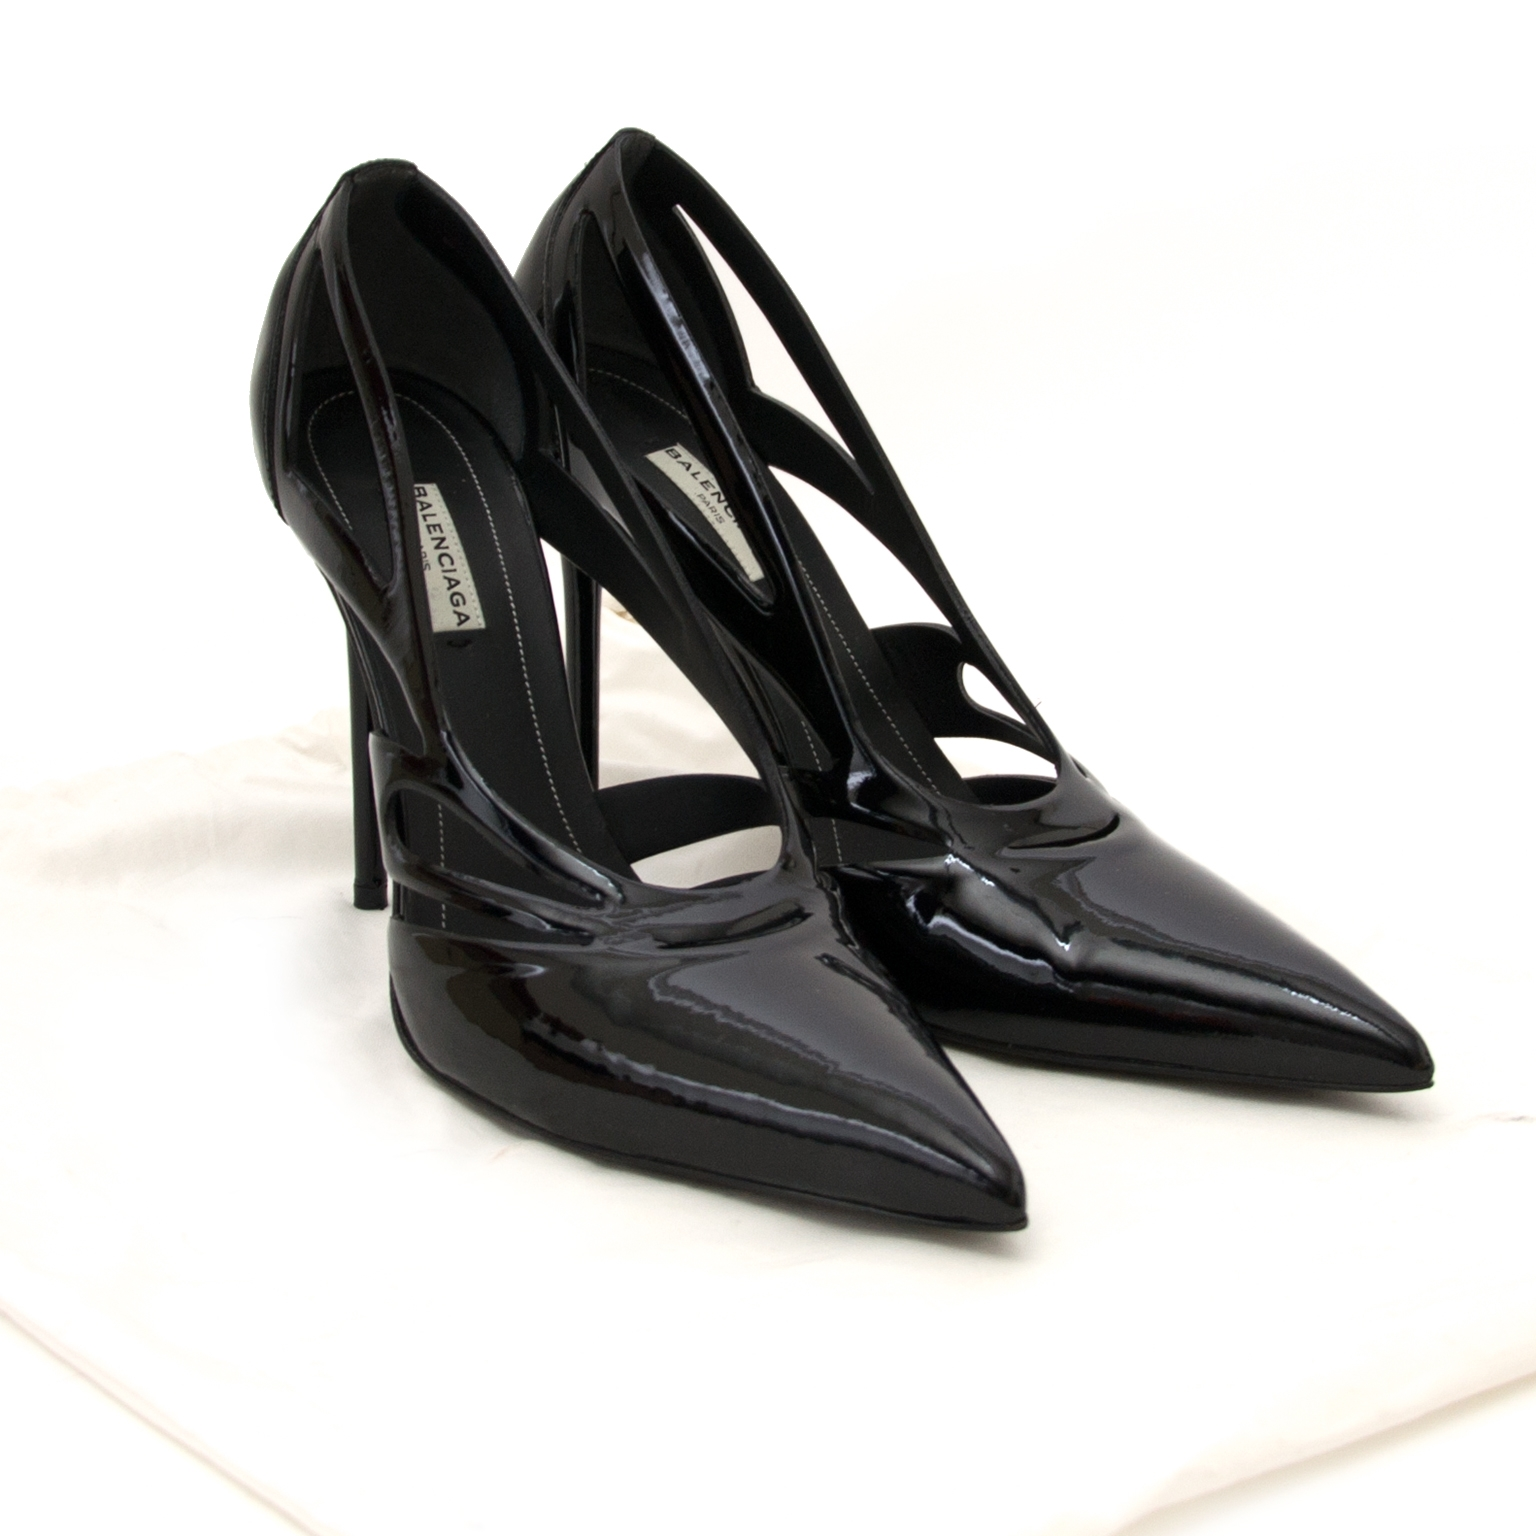 balenciaga patent laser-cut spider pumps now for sale at labellov vintage fashion webshop belgium